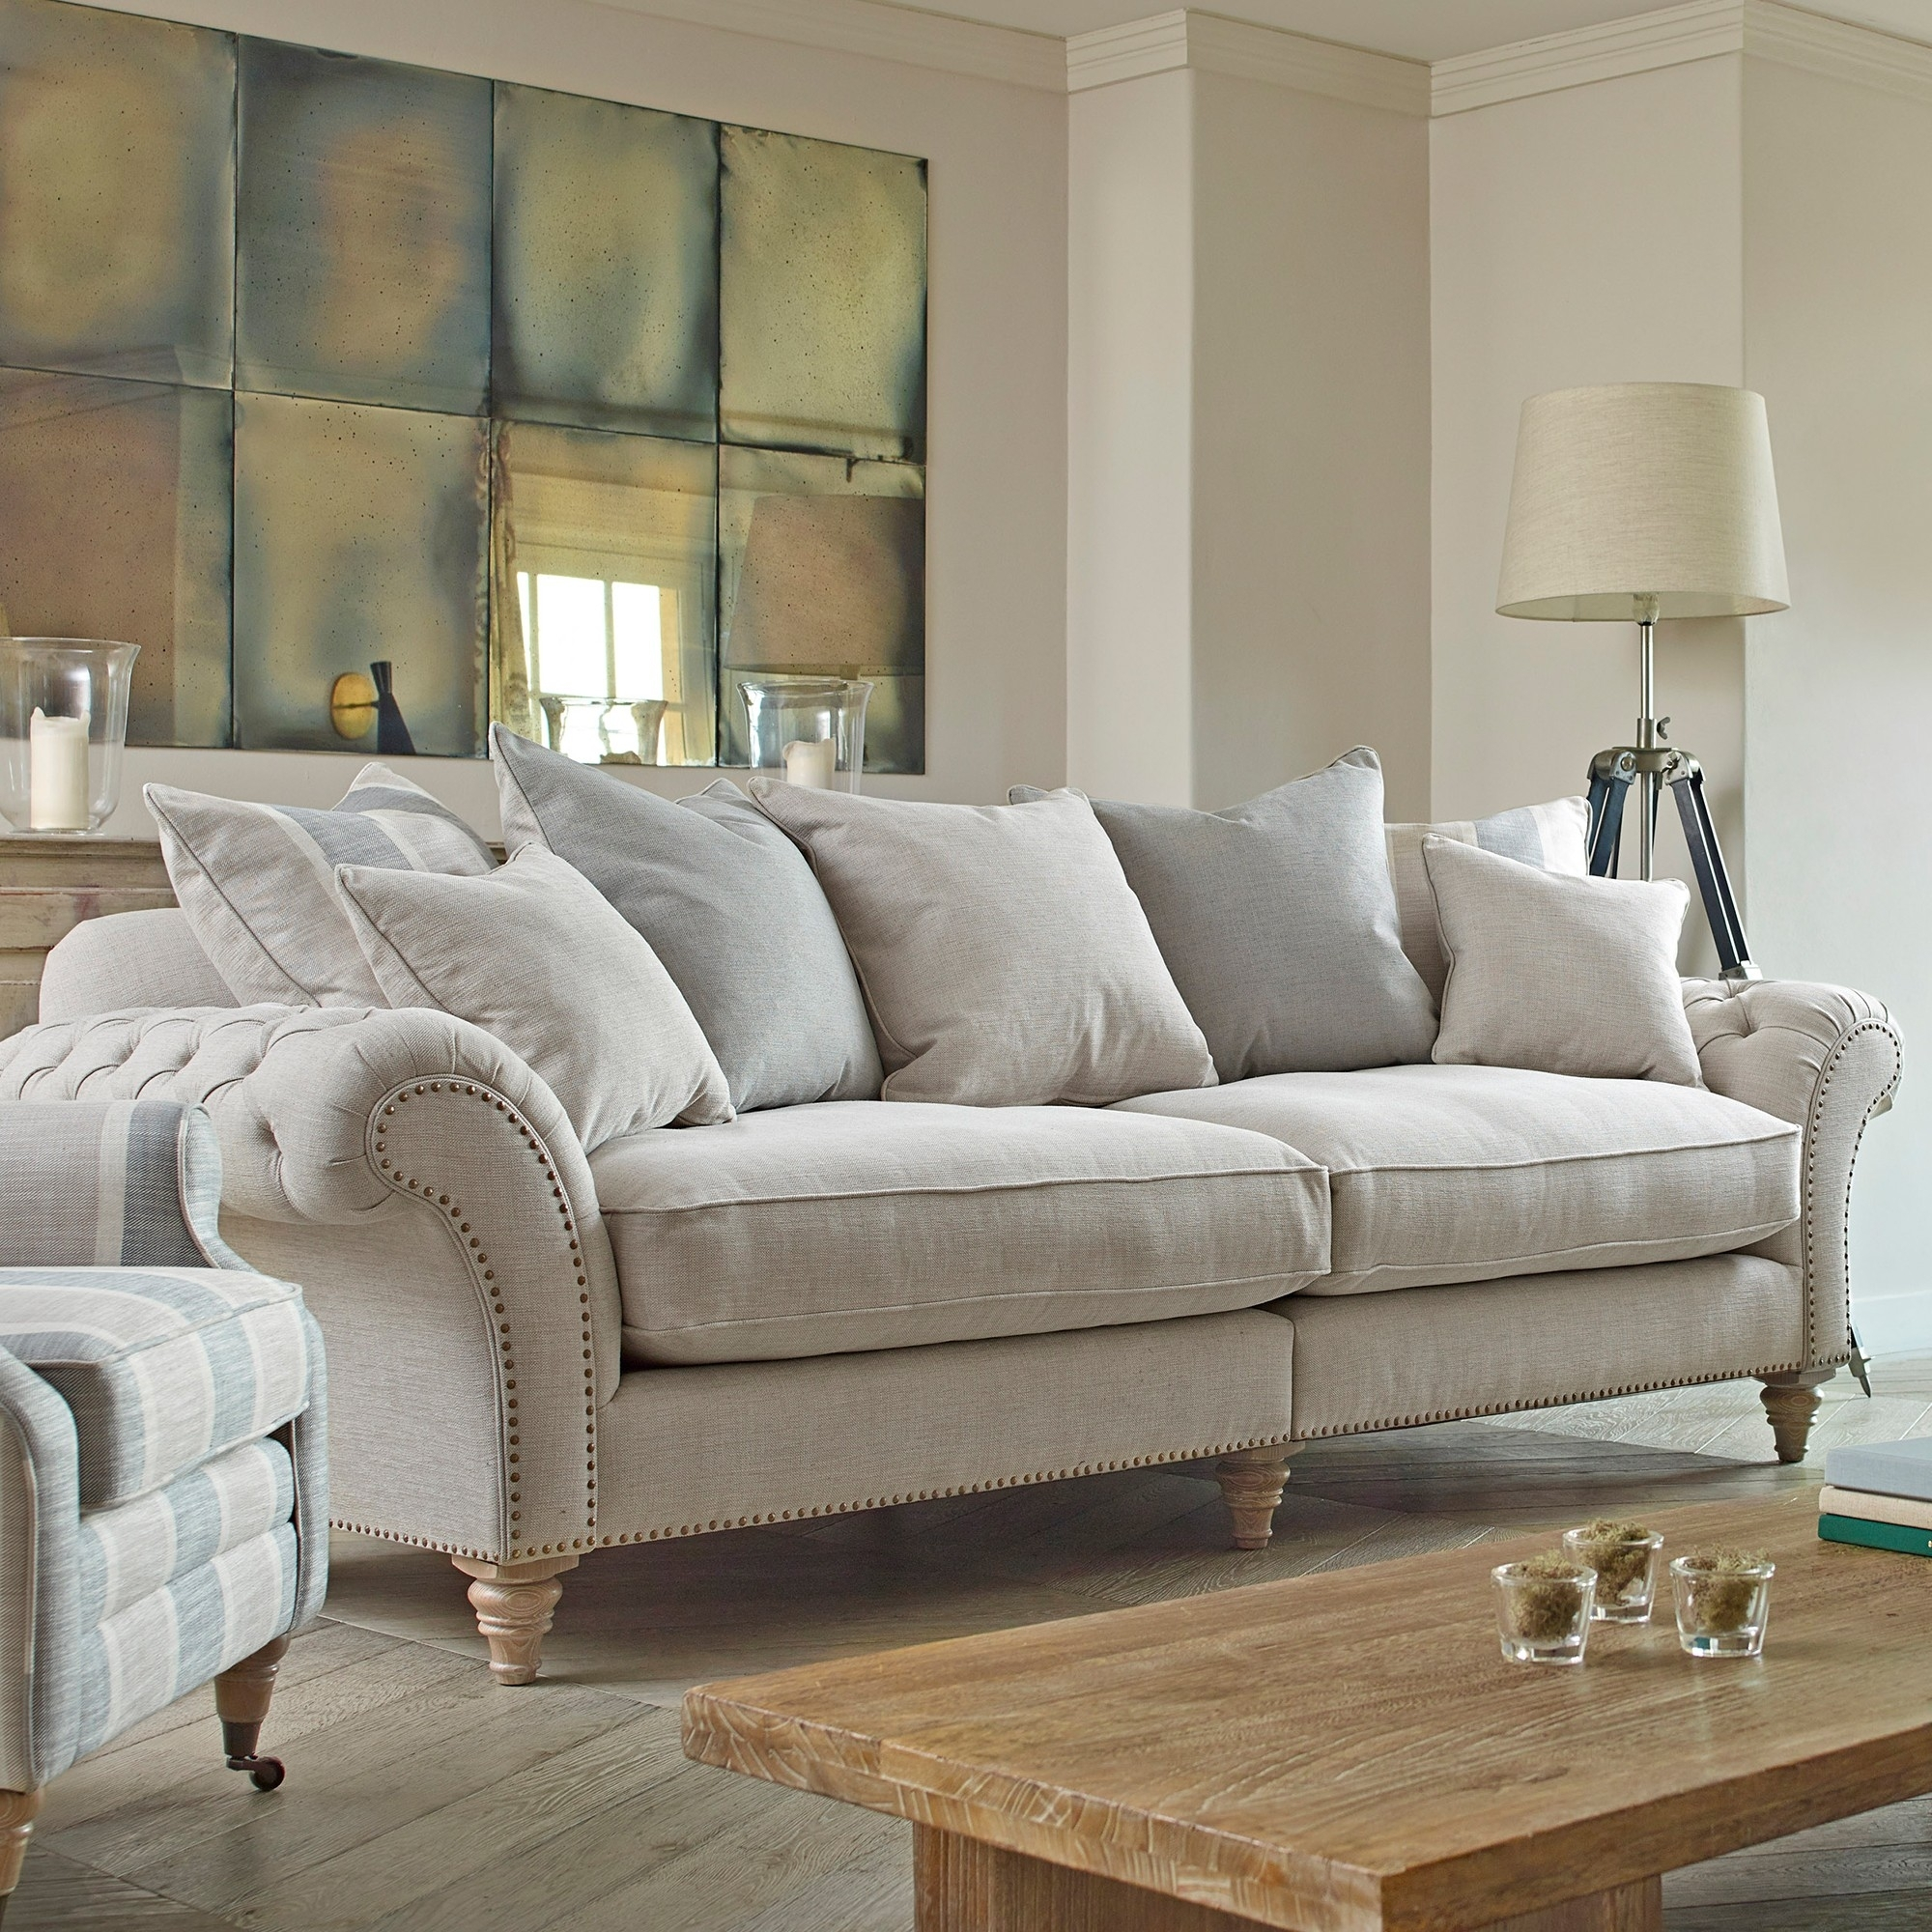 Apus Extra Large Sofa – Fabric Sofas – Cookes Furniture Throughout Extra Large Sofas (Image 1 of 10)